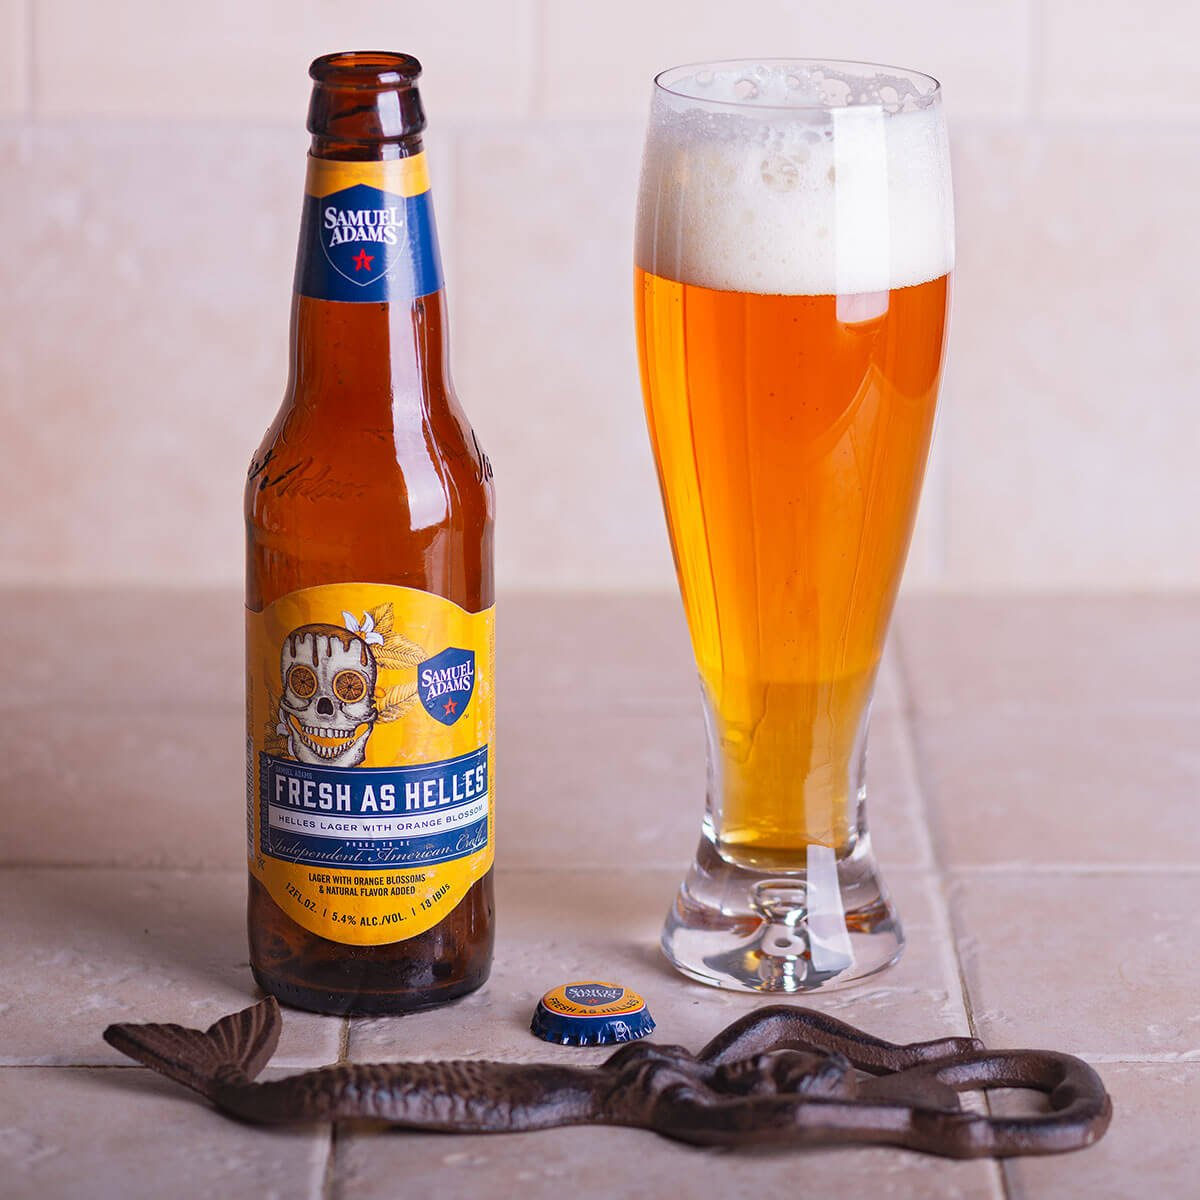 Fresh As Helles, a German-style Munich Helles Lager by the Boston Beer Company